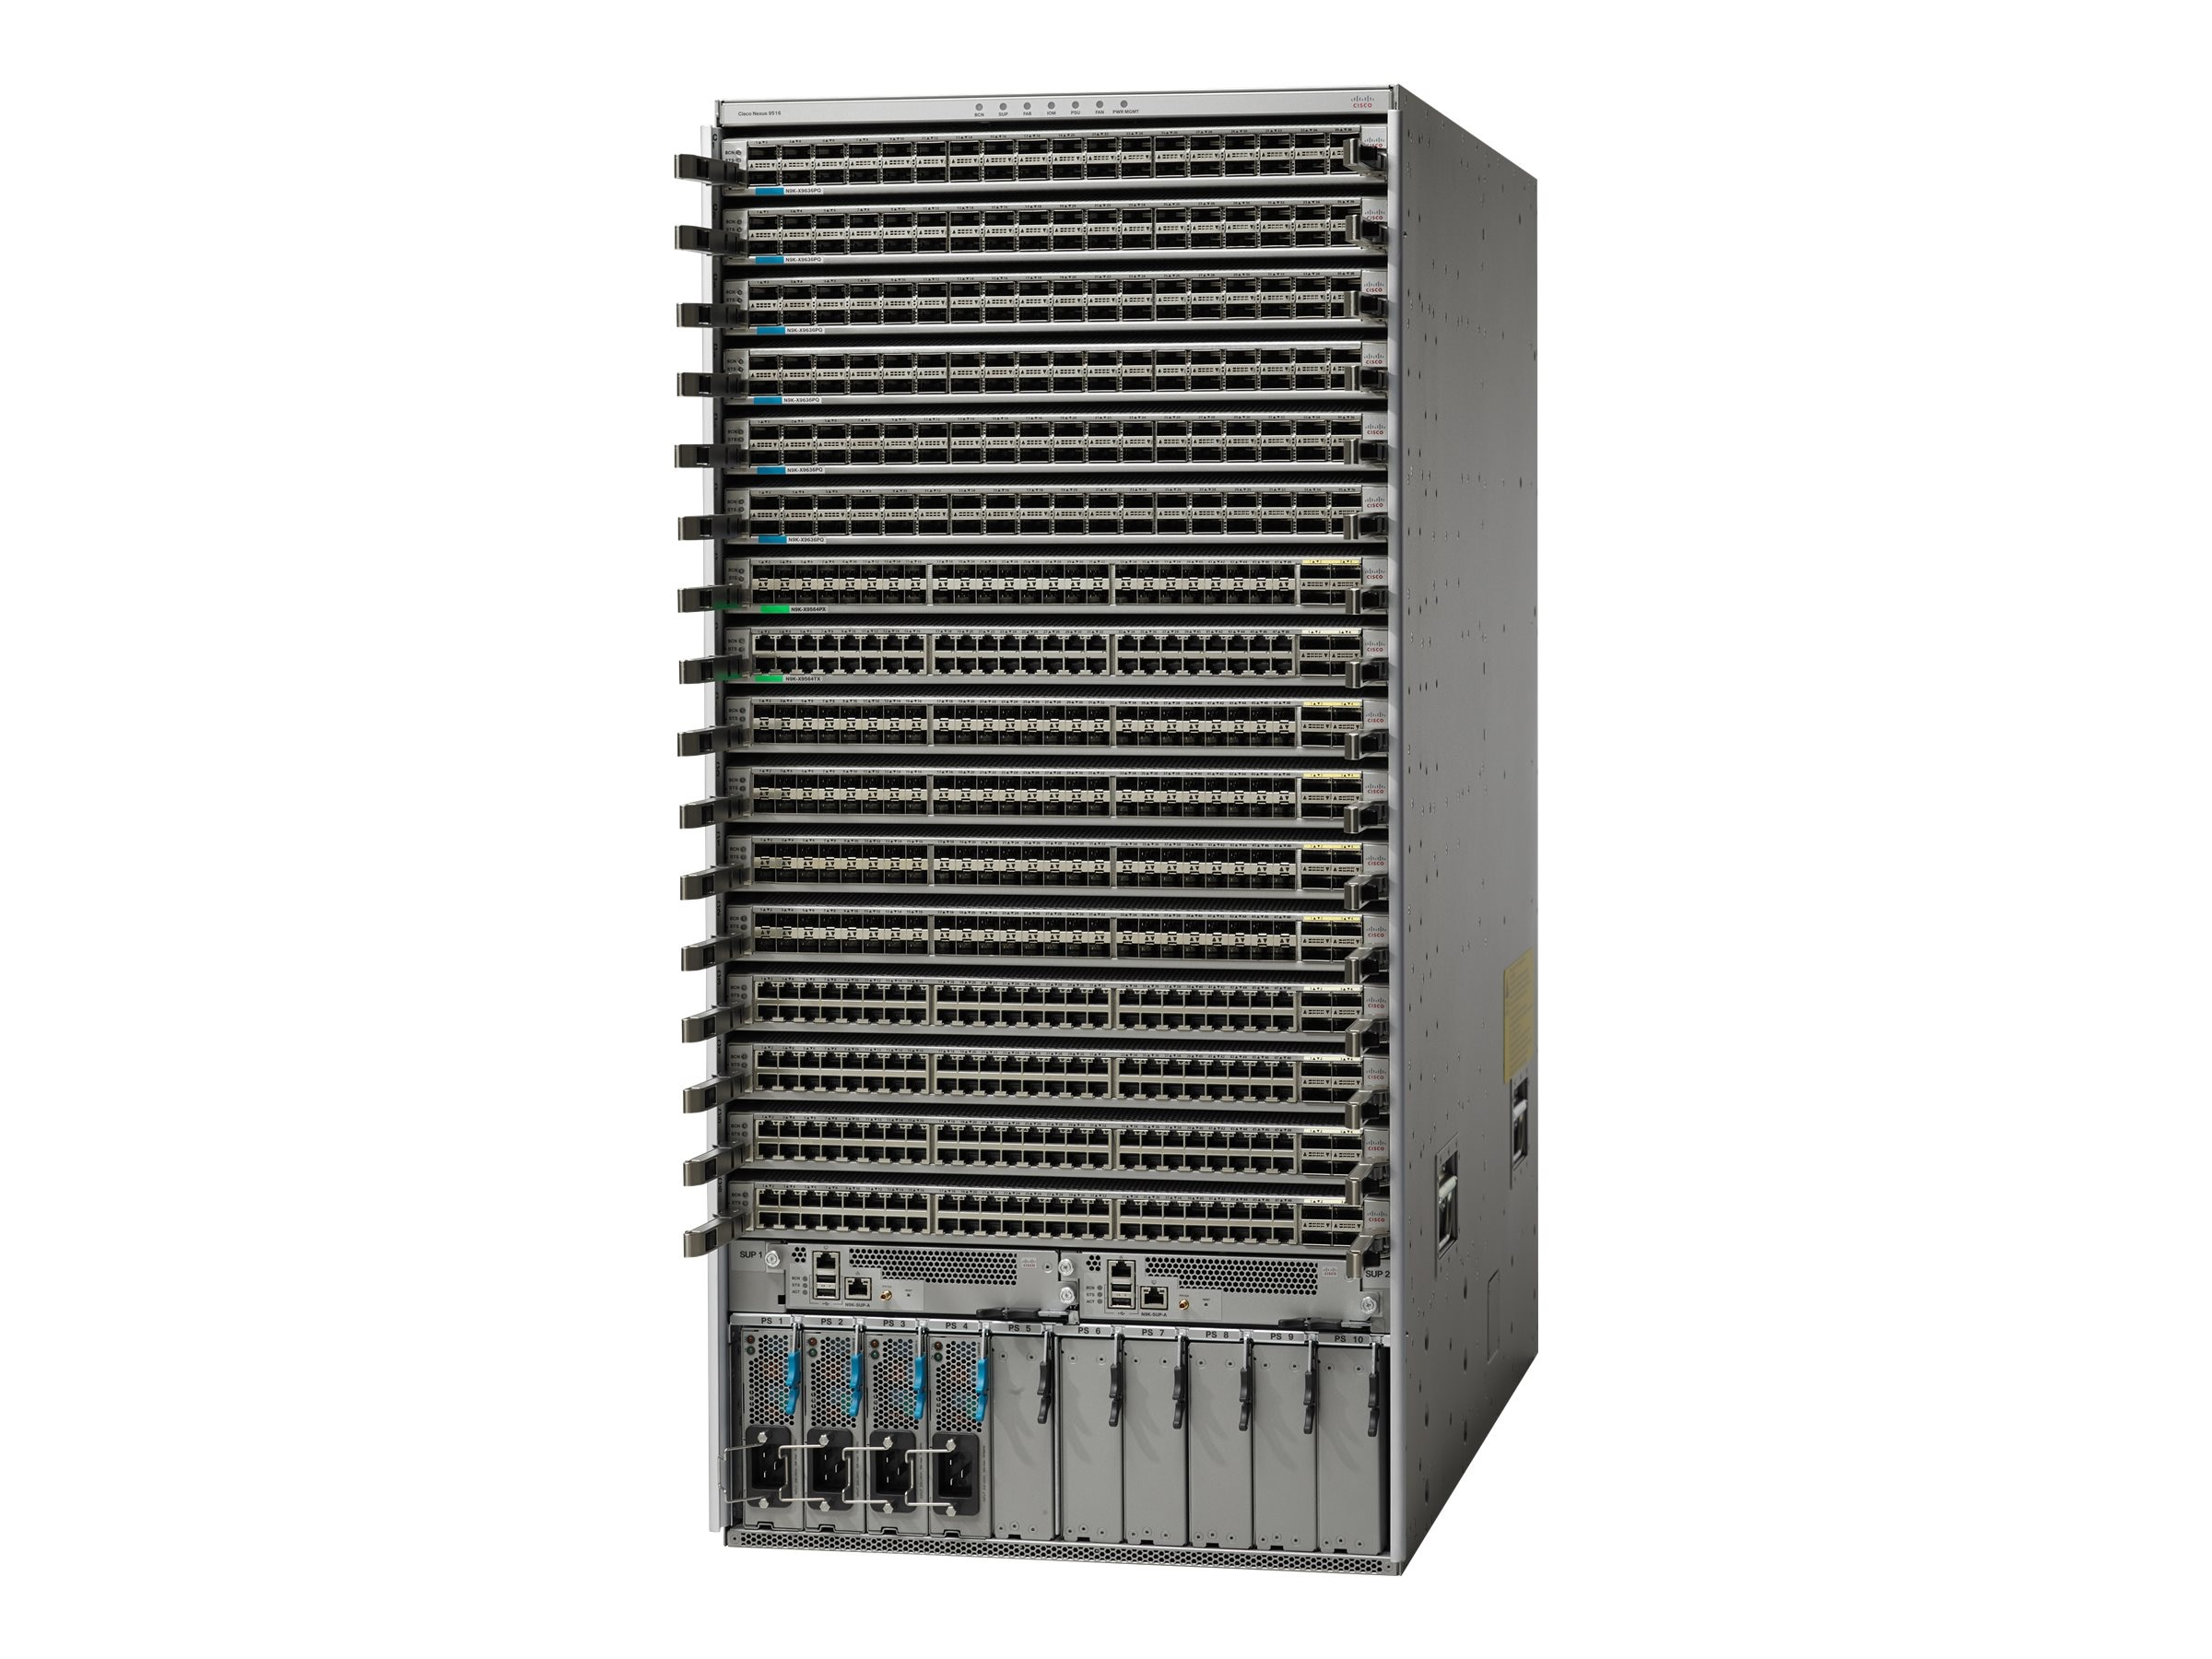 Cisco N9K-C9516 Image 1